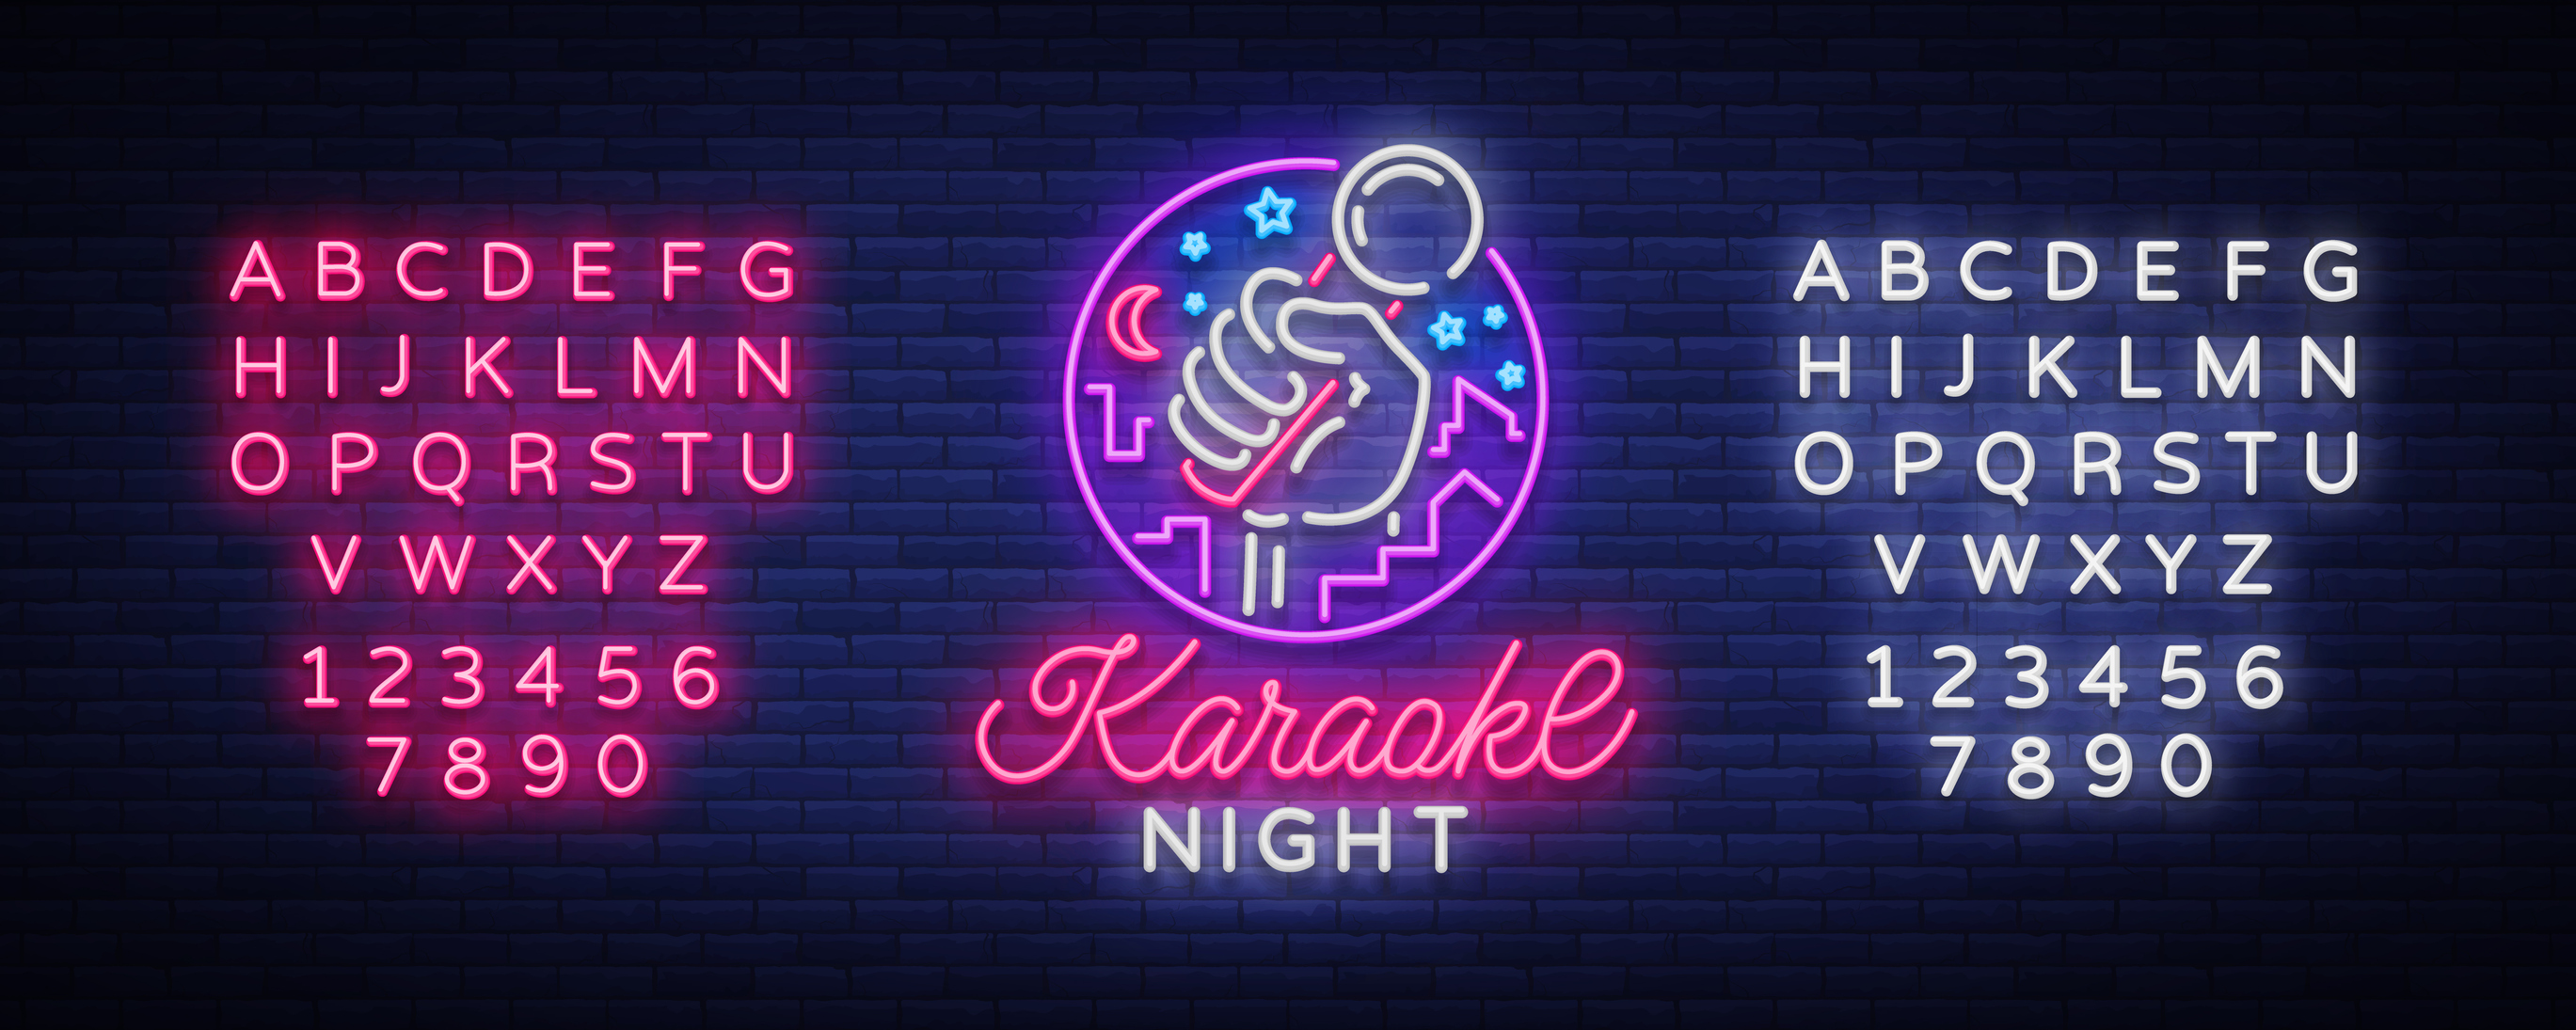 Karaoke night vector. Neon sign, luminous symbol, symbol, light banner. Advertising bright night karaoke bar, party, disco bar, night club. Live music. Design template. Editing text neon sign